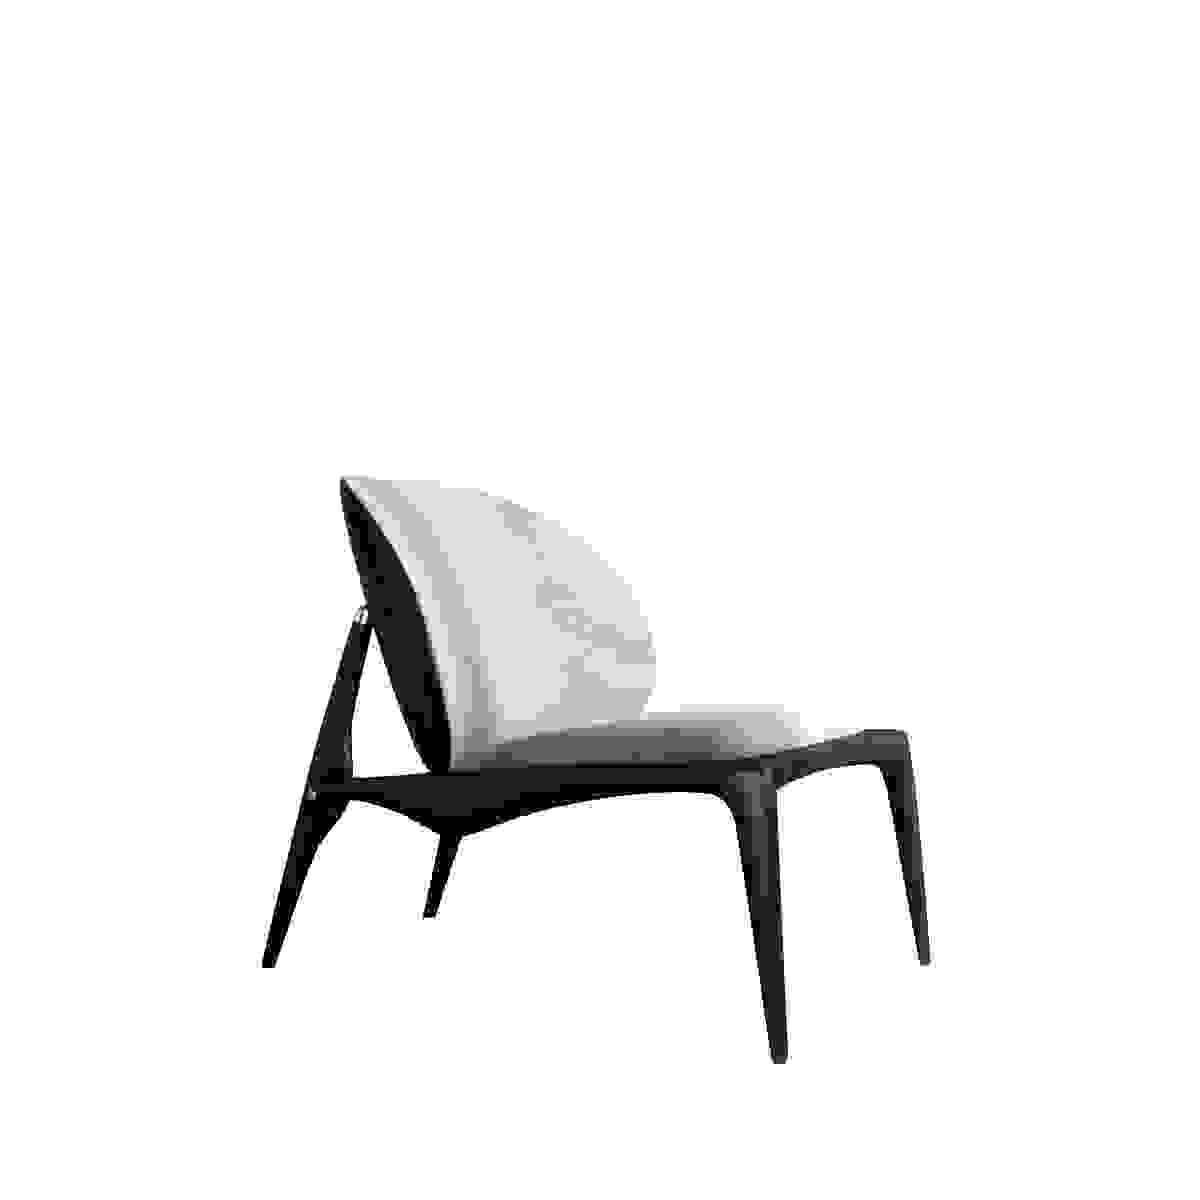 coleccion-alexandra-the-one-collection-shi-lounge-chair.jpg